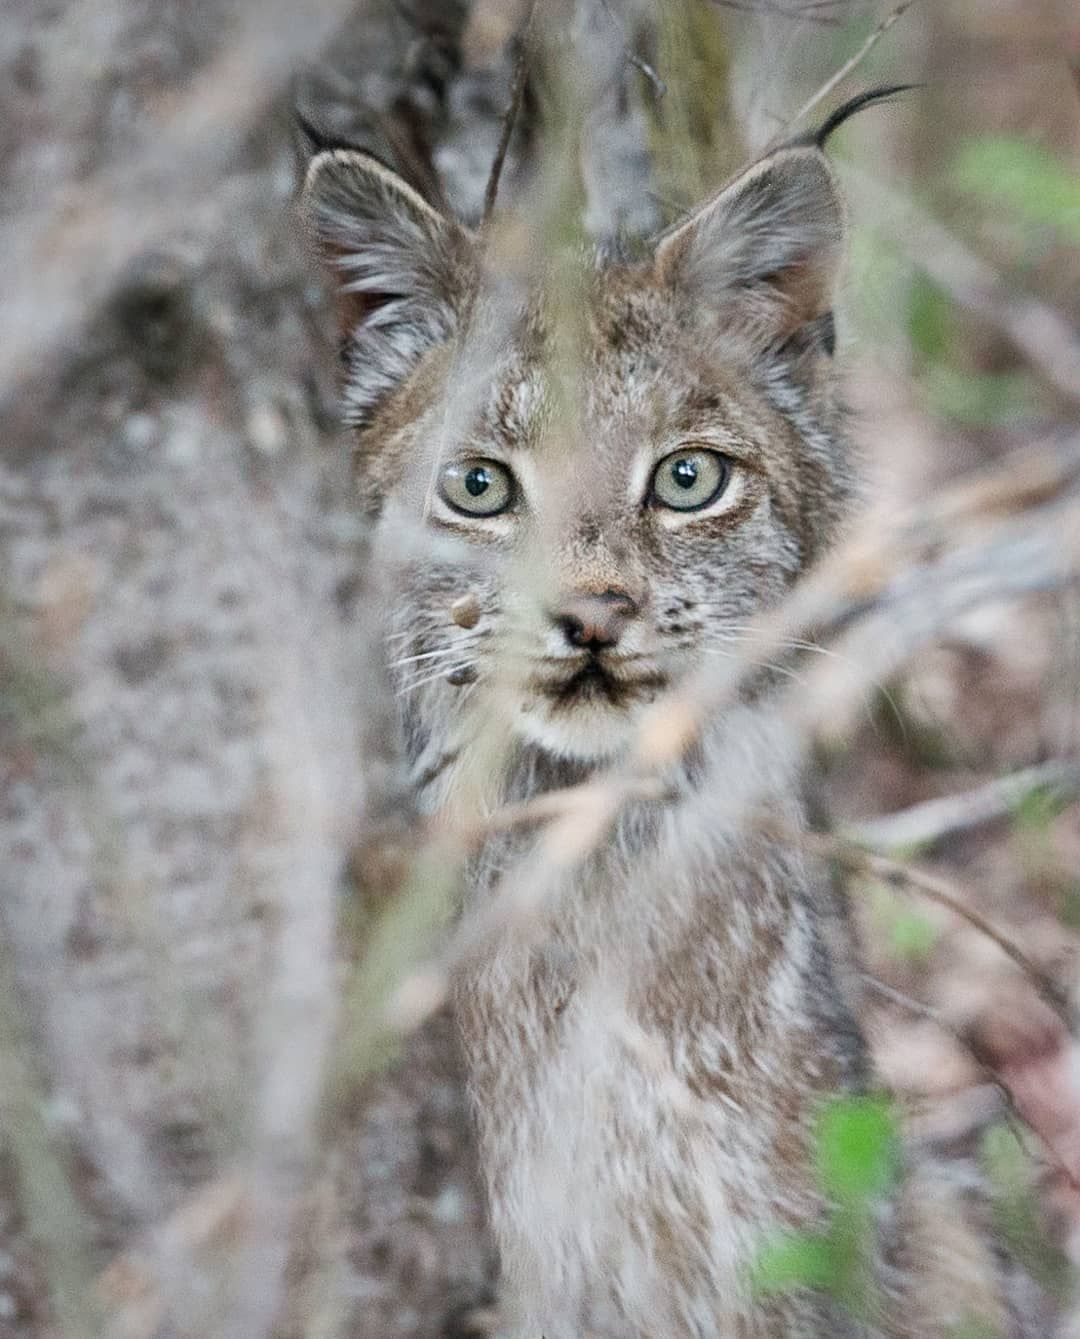 b580d01b3d59 A young lynx peering out behind the trees in Riding Mountain National Park.